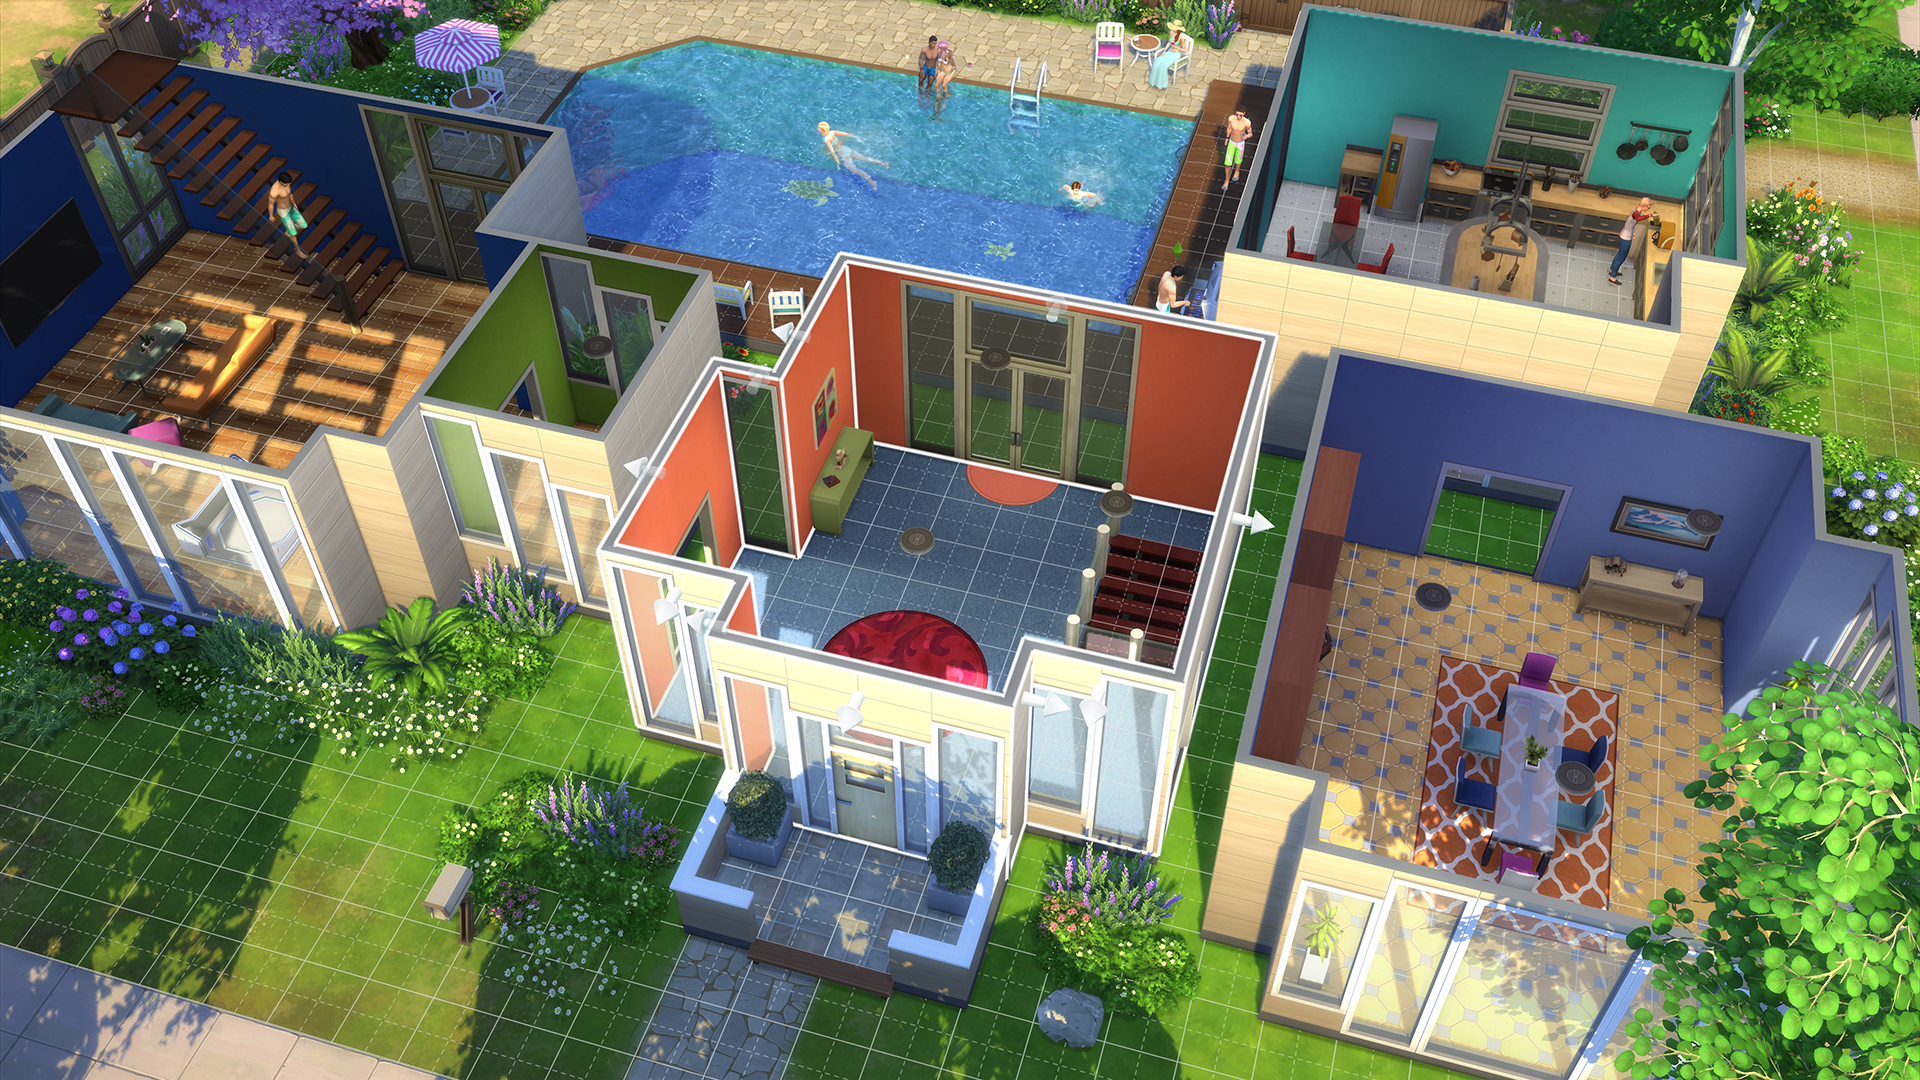 A still from The Sims 4. (Courtesy Electronic Arts)